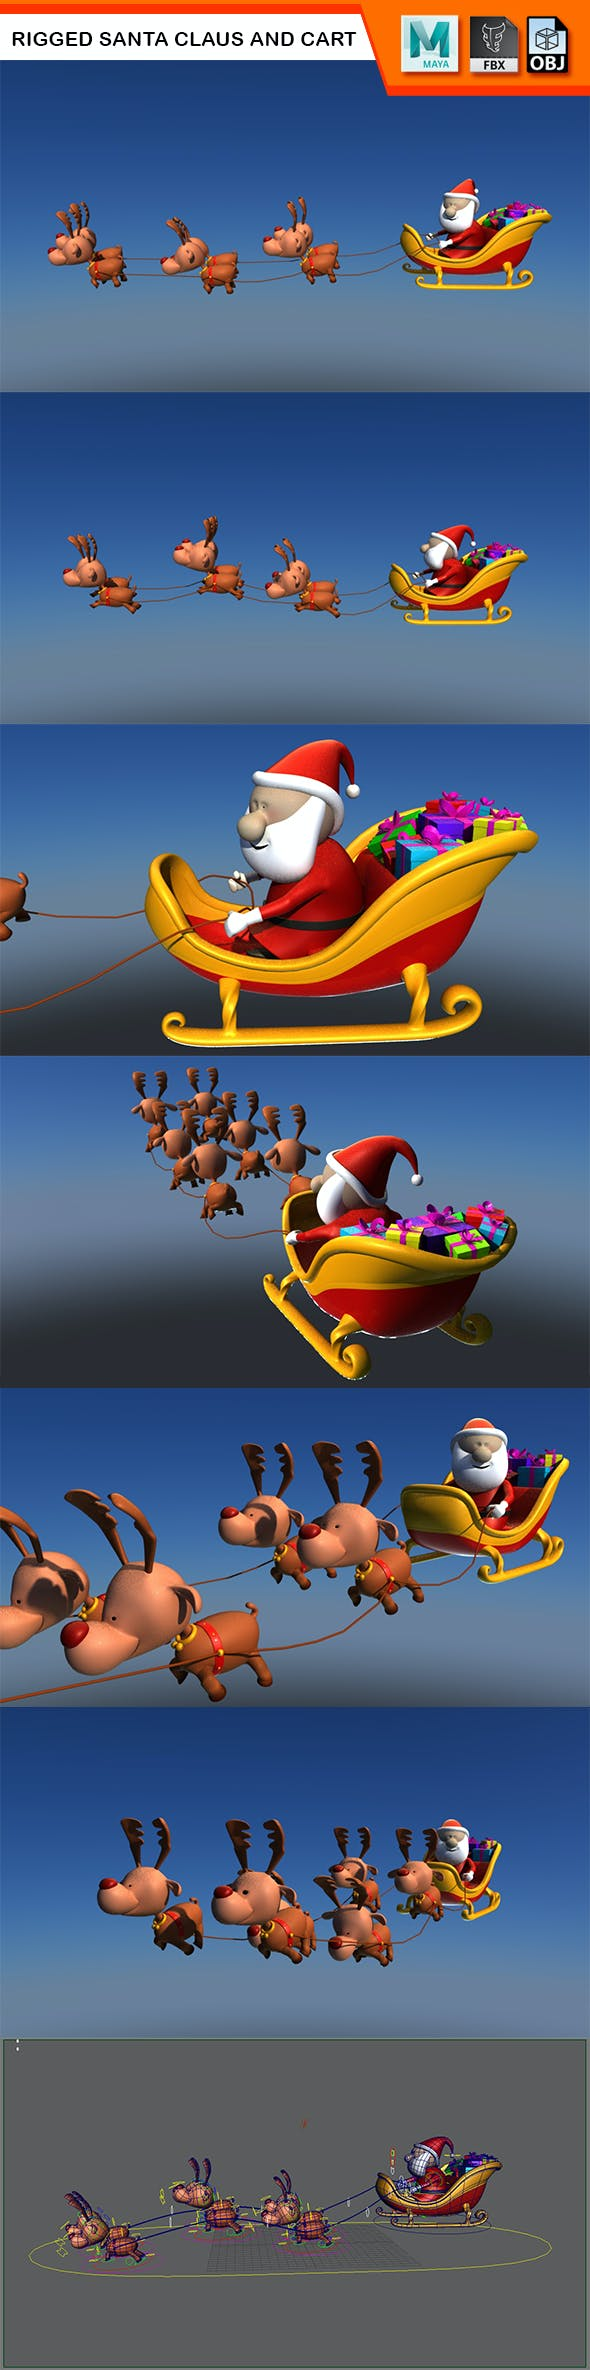 Rigged Santa Claus and Cart with Reindeers - 3DOcean Item for Sale